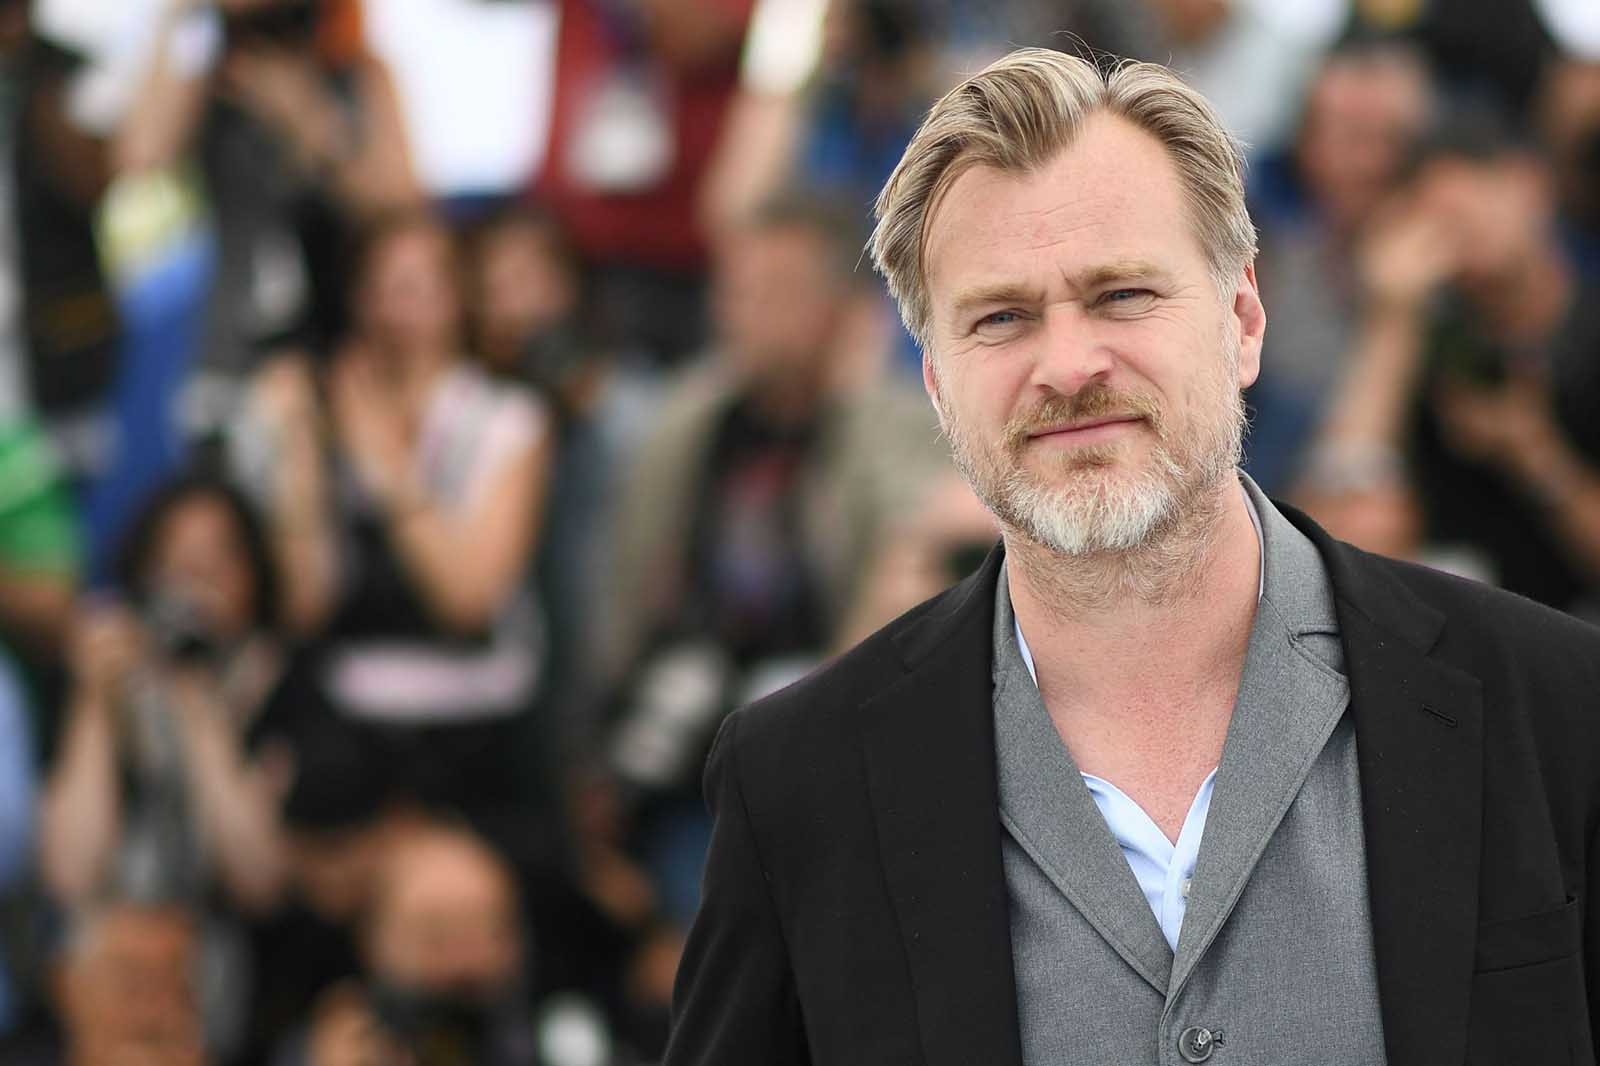 'Tenet' is supposed to be the savior of cinema, but considering Christopher Nolan can't write a movie to save his life, that's not a good sign.